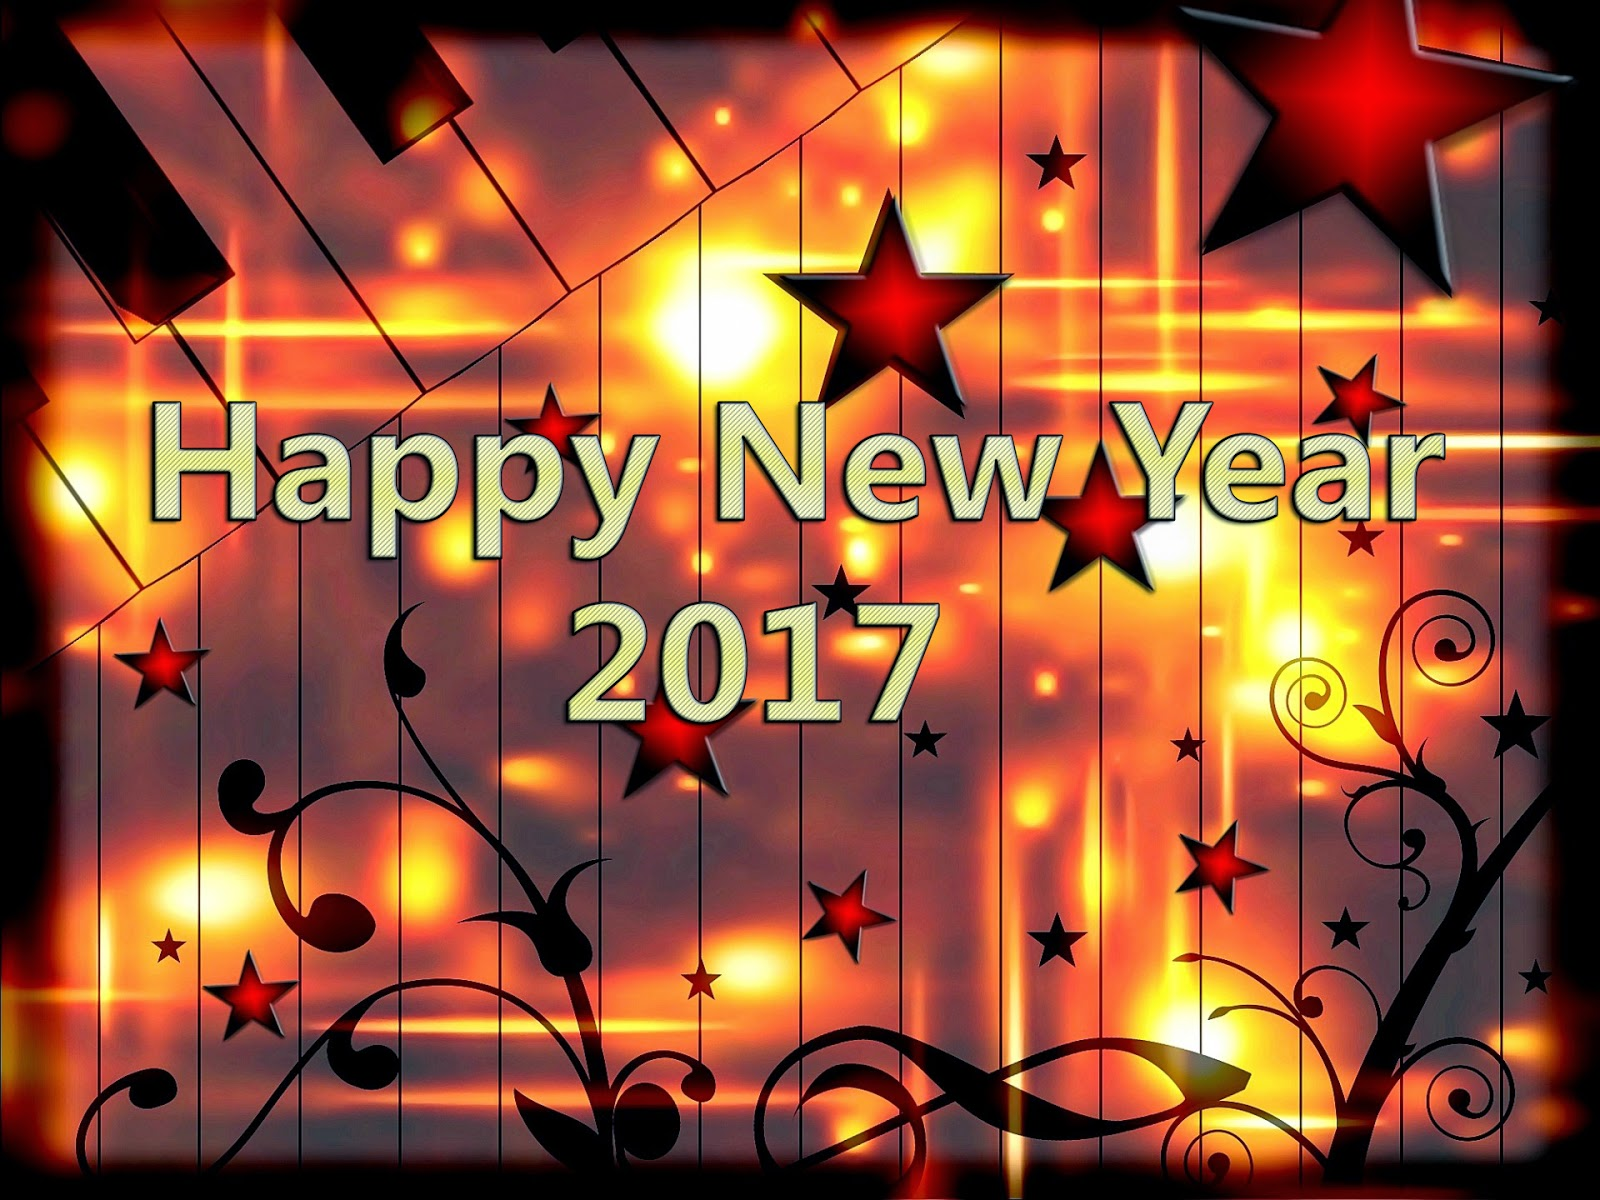 New year greetings cards cliparts wishes quotes hot images hd new year greetings cards cliparts wishes quotes hot images hd wallpapers 2017 kristyandbryce Images